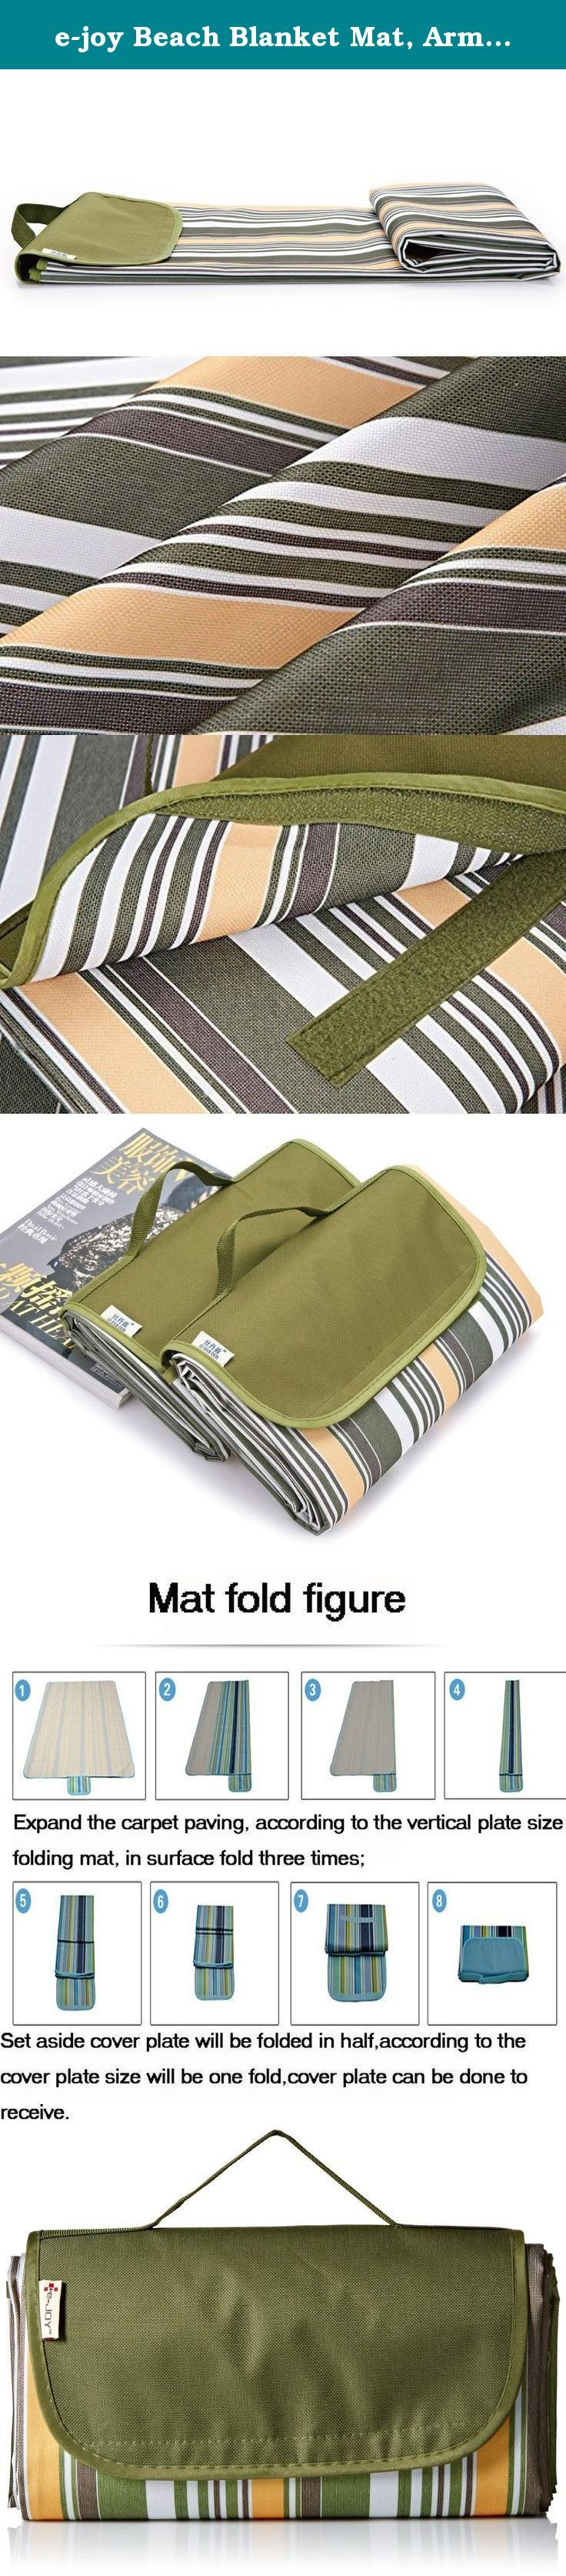 "e-joy Beach Blanket Mat, Army Green. Enjoy enjoy outdoor life . Enjoy believes spending time with family and friends bring us happiness, pleasure and life satisfaction. We are dedicated to provide high quality premium products to make your leisure time with your loved ones even more enjoyable. Let's go outside and enjoy your sunny day with enjoy blanket. Benefits and design: Folds out: 56""x 70"", folds down: 8"" x 12"", water resistant top dries quickly once wet, water proof PVC bottom..."